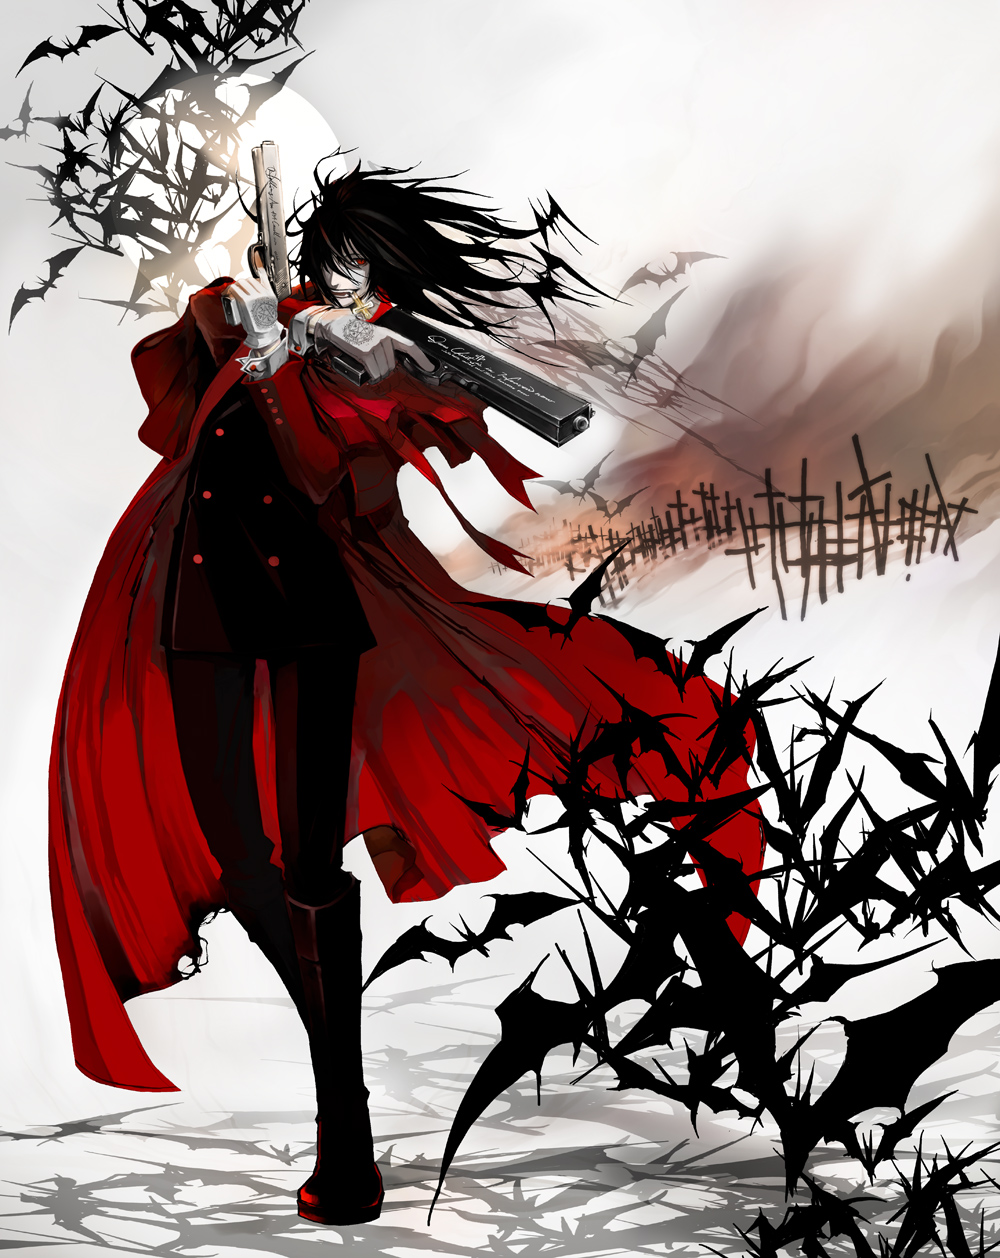 Hellsing Backgrounds, Compatible - PC, Mobile, Gadgets| 1000x1258 px